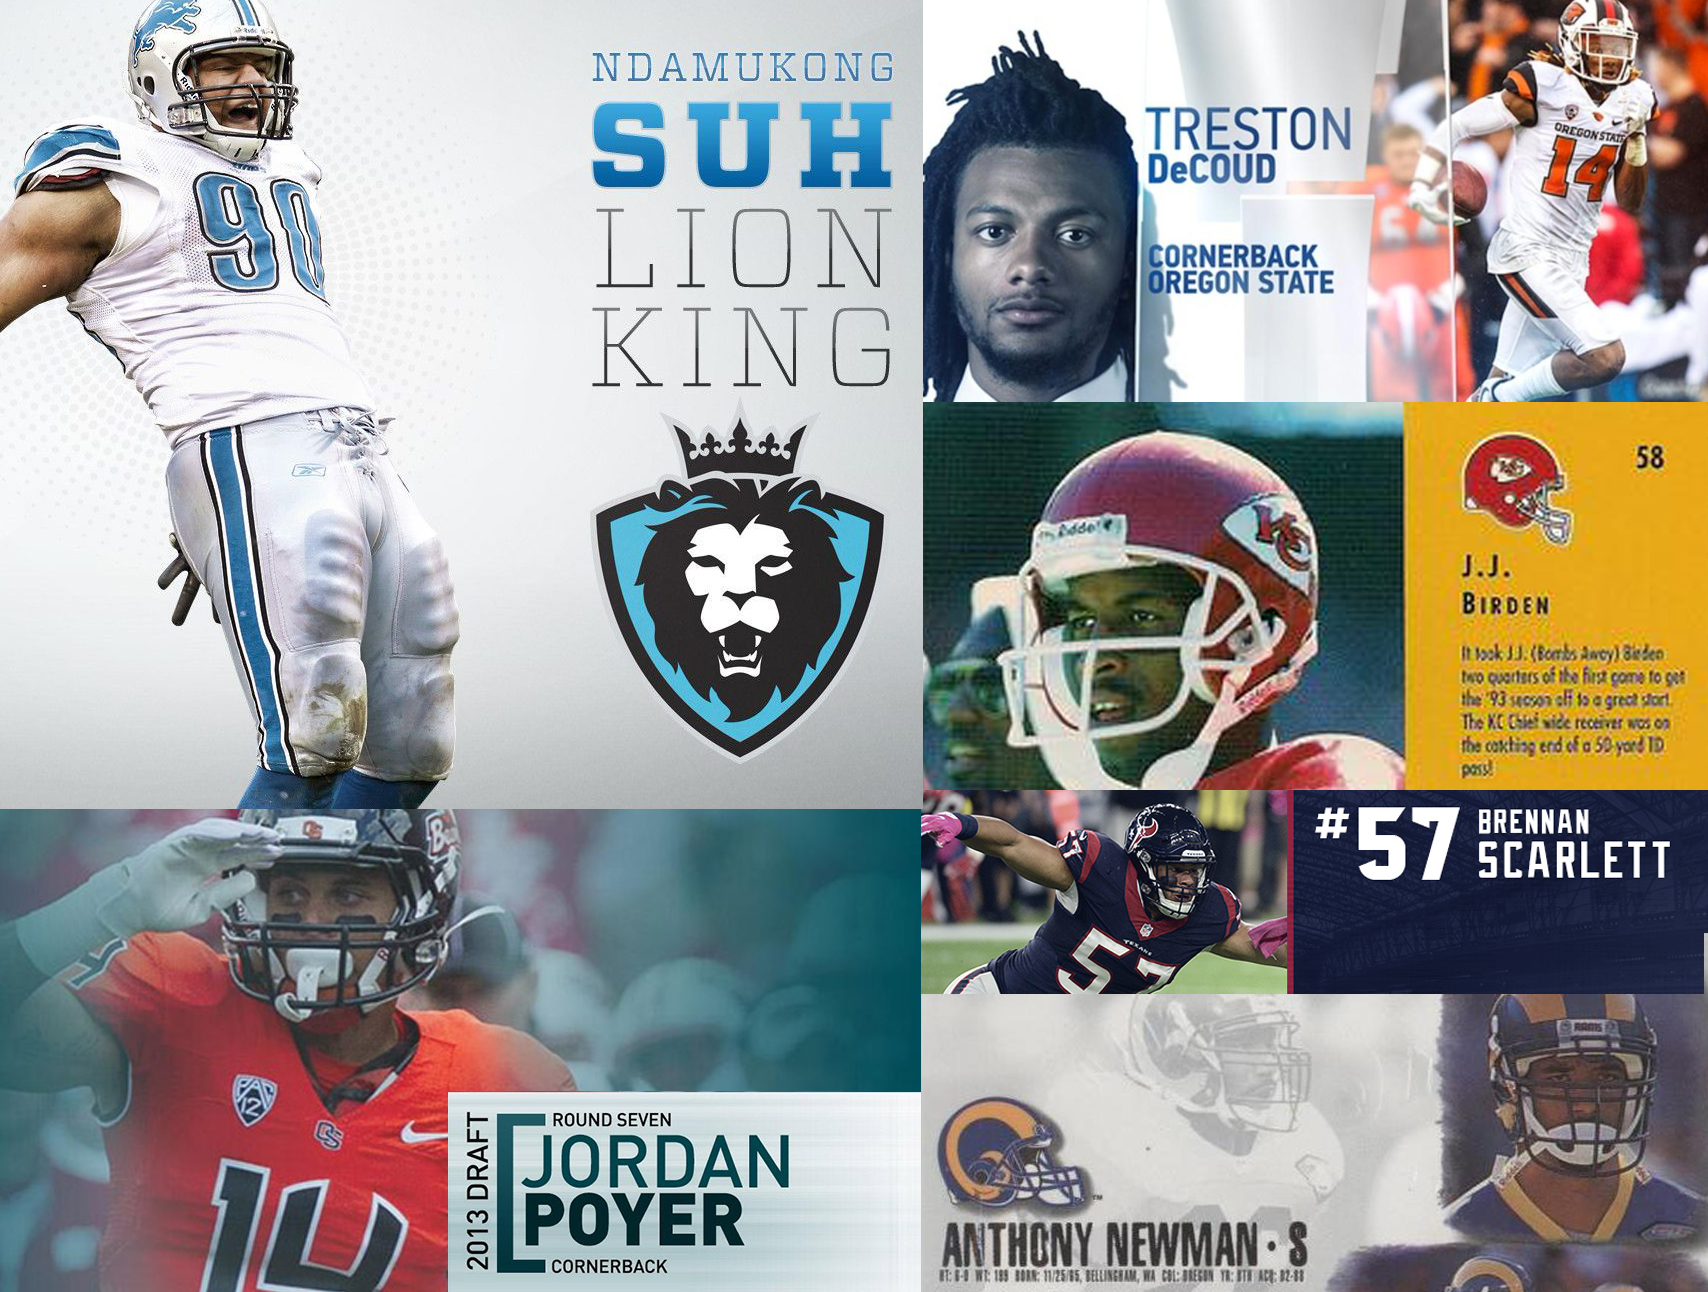 Ndamukong Suh, Treston Decoud, Jordan Poyer, Brennan Scarlett, J.J. Birden and Anthony Newman